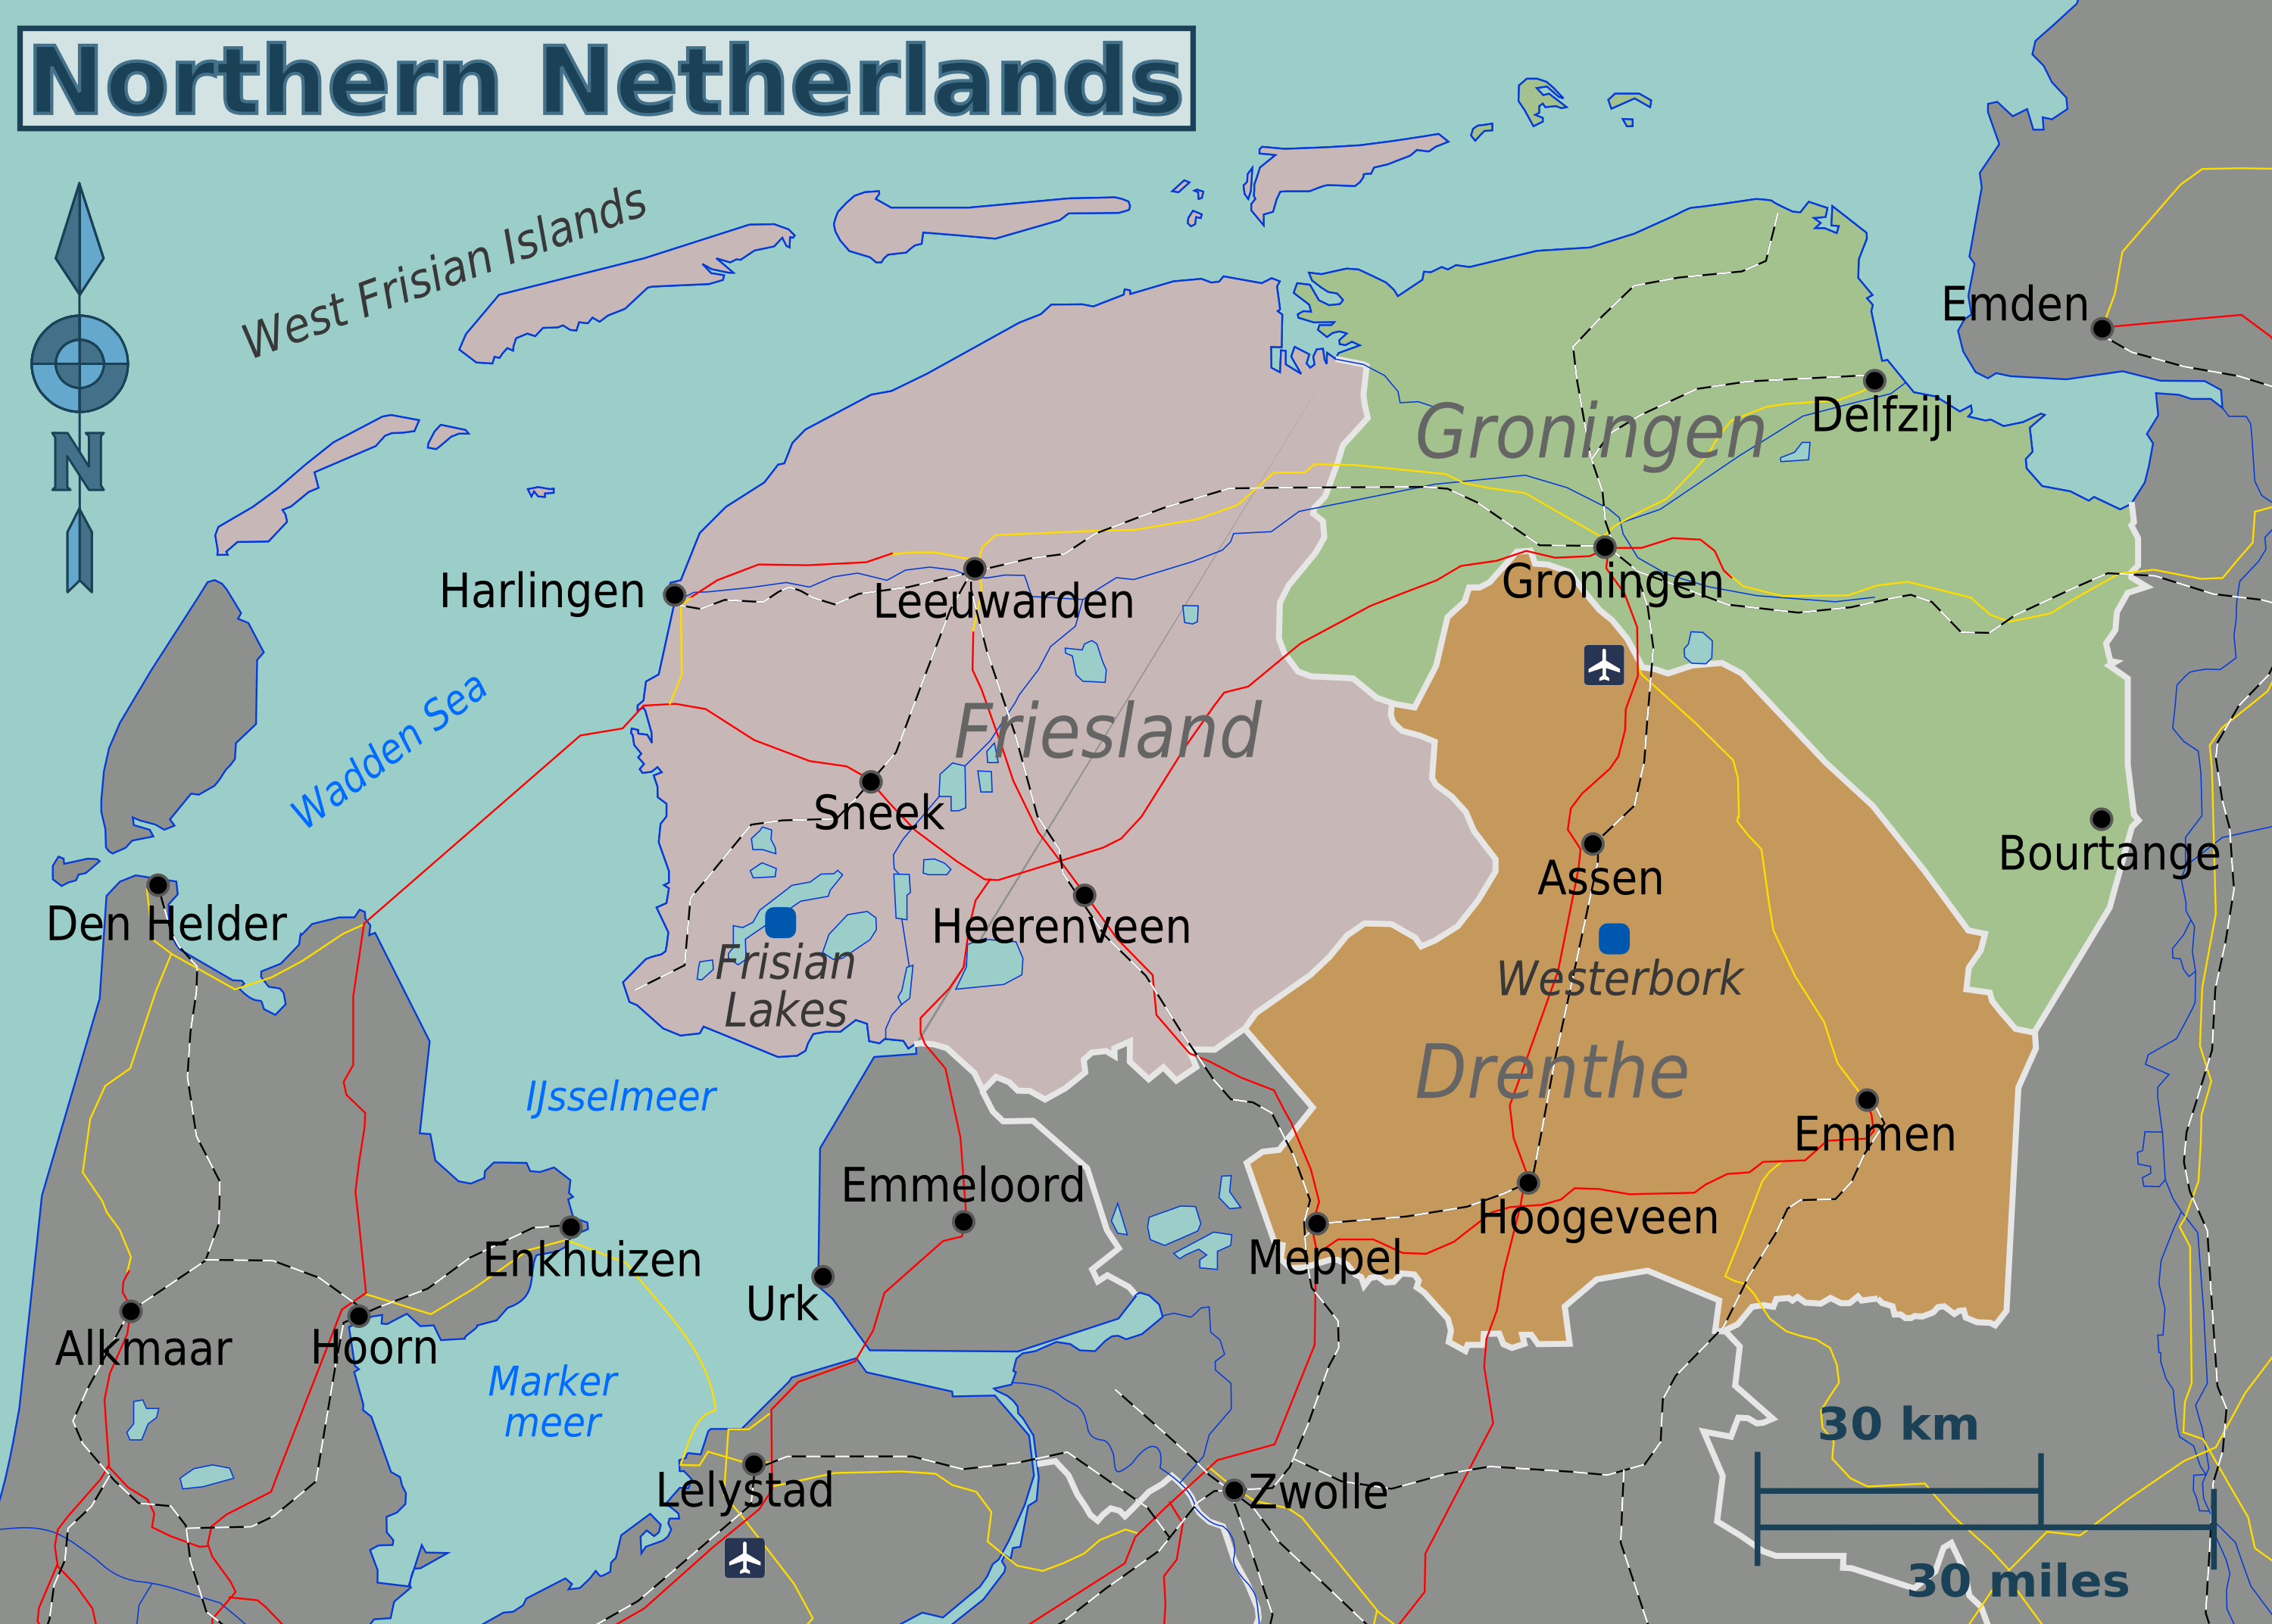 Northern Netherlands – Travel guide at Wikivoyage